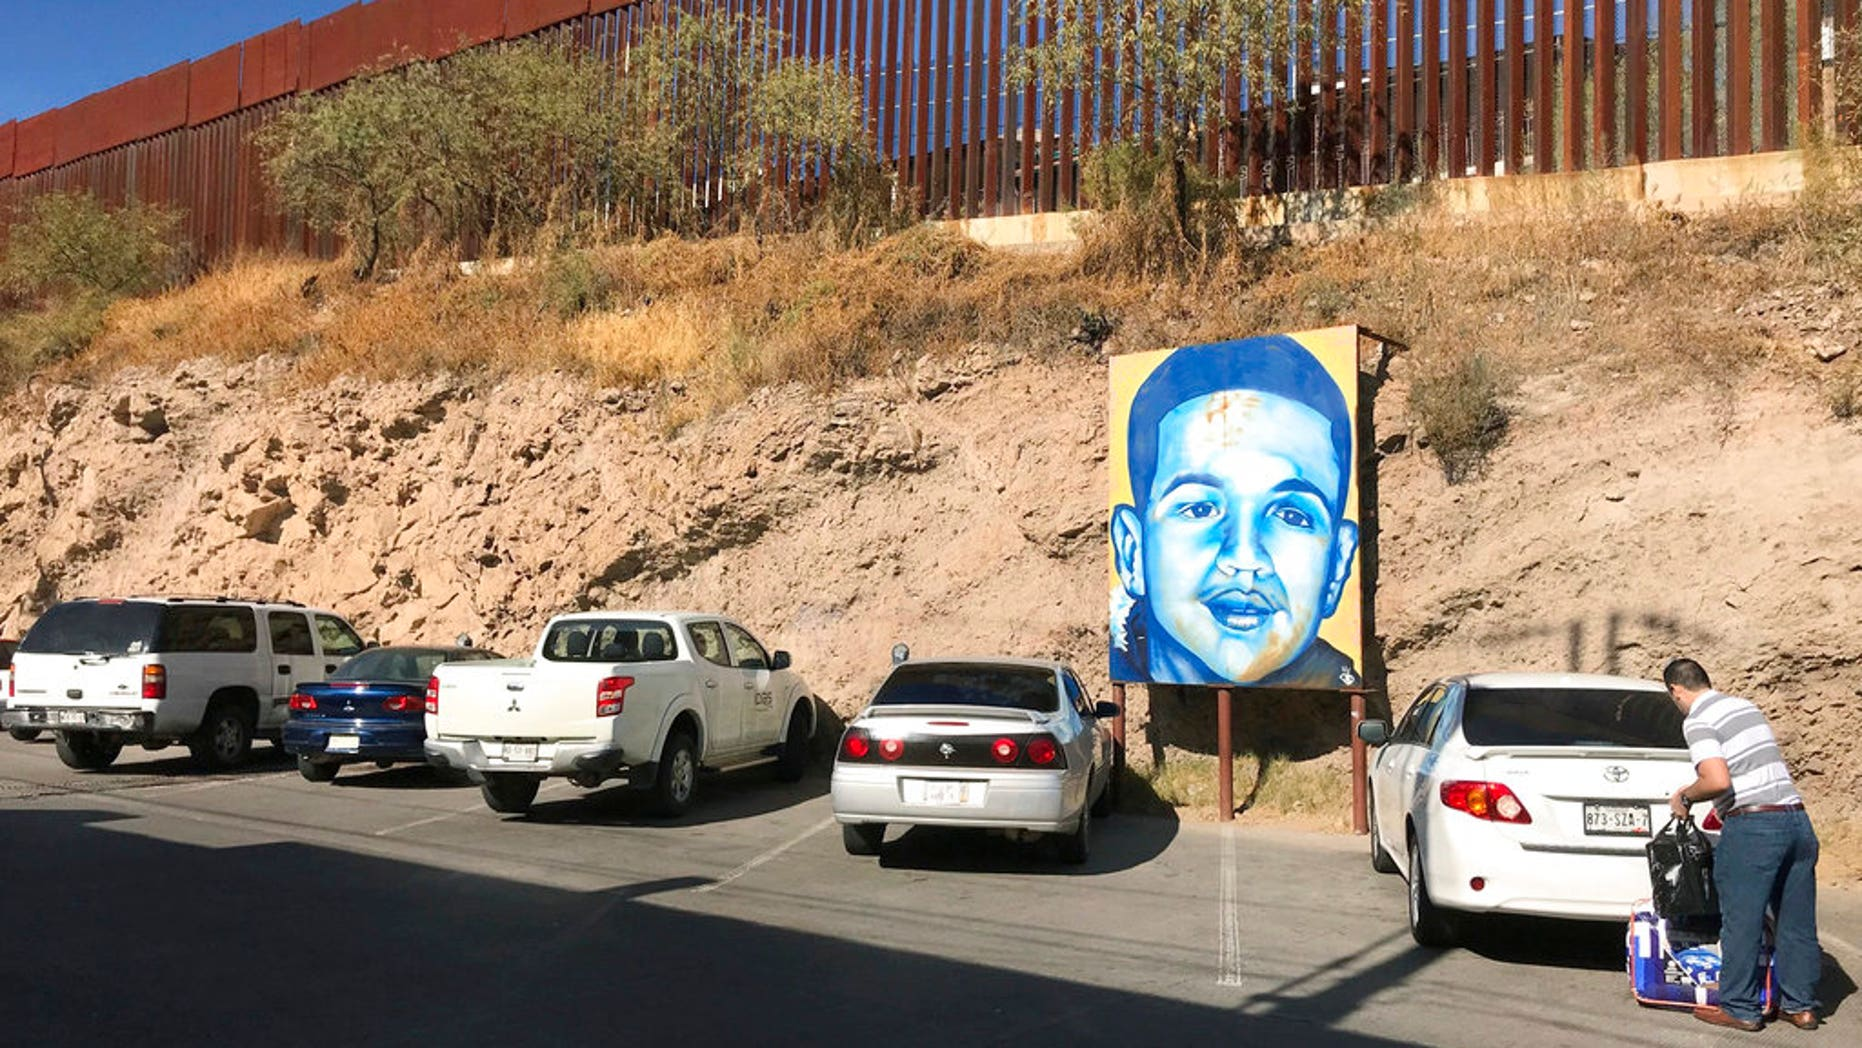 A portrait of Mexican youth Jose Antonio Elena Rodriguez, who was fatally shot in 2012, is displayed along the street where he died, in December 2017.